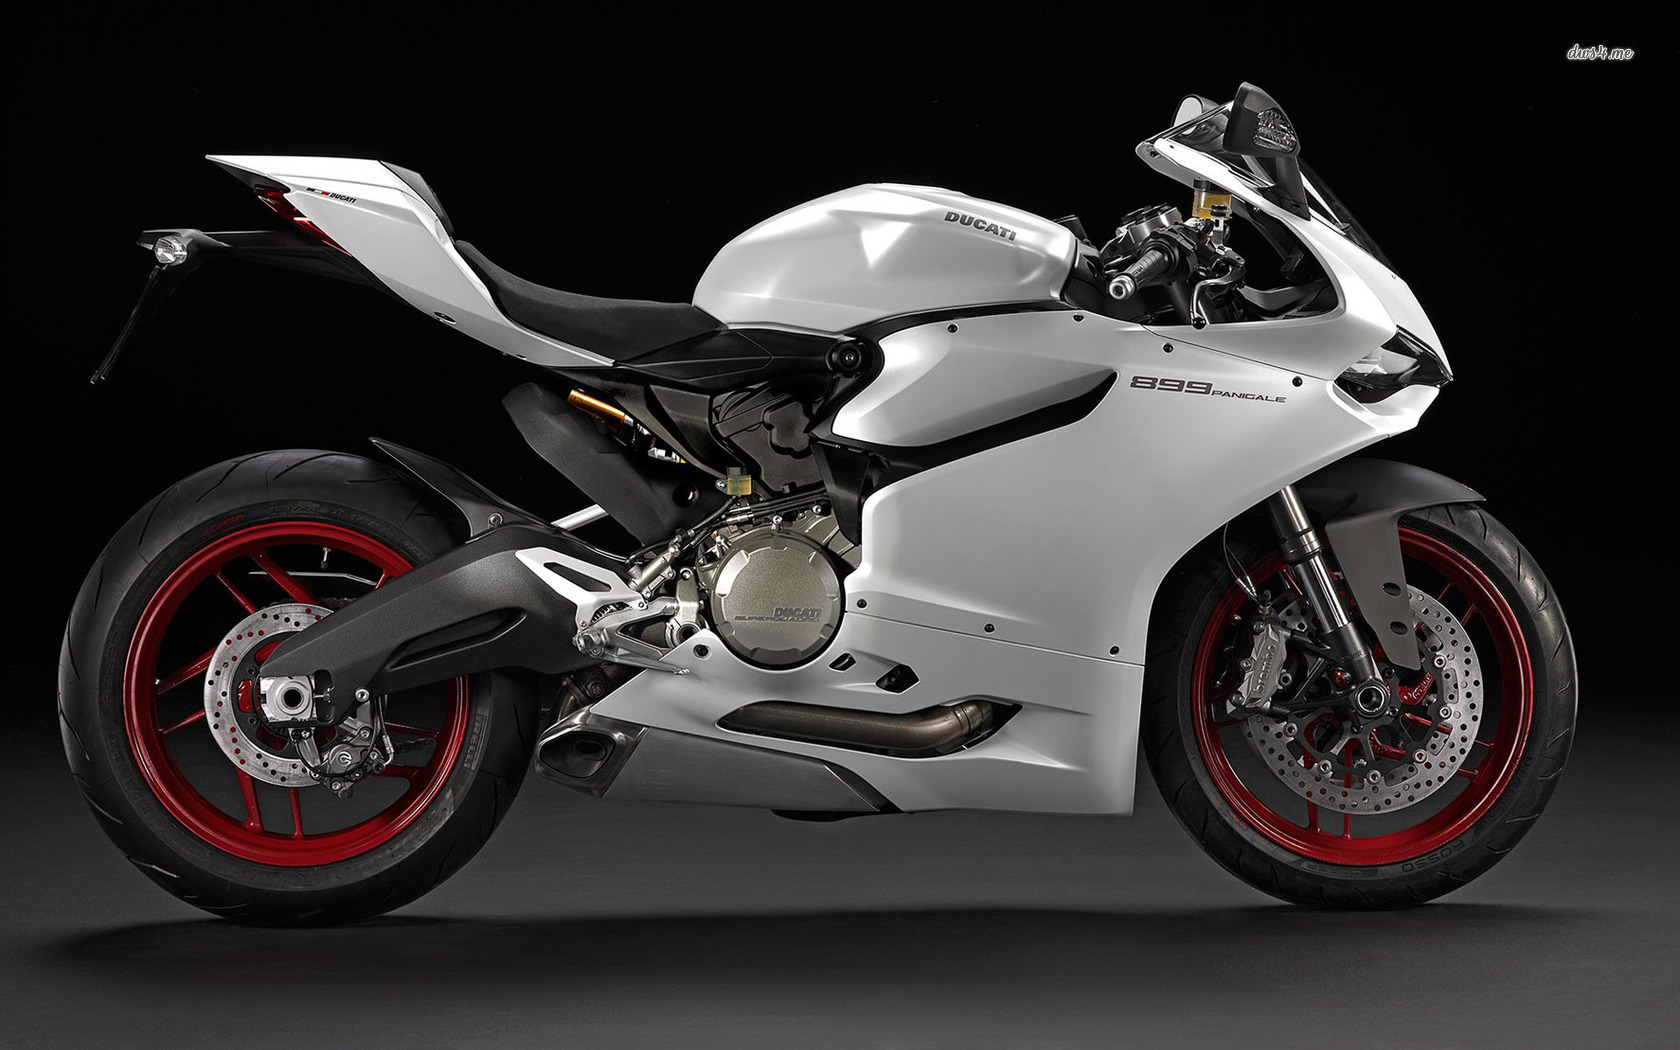 Ducati 899 Panigale wallpaper   Motorcycle wallpapers   23764 1680x1050